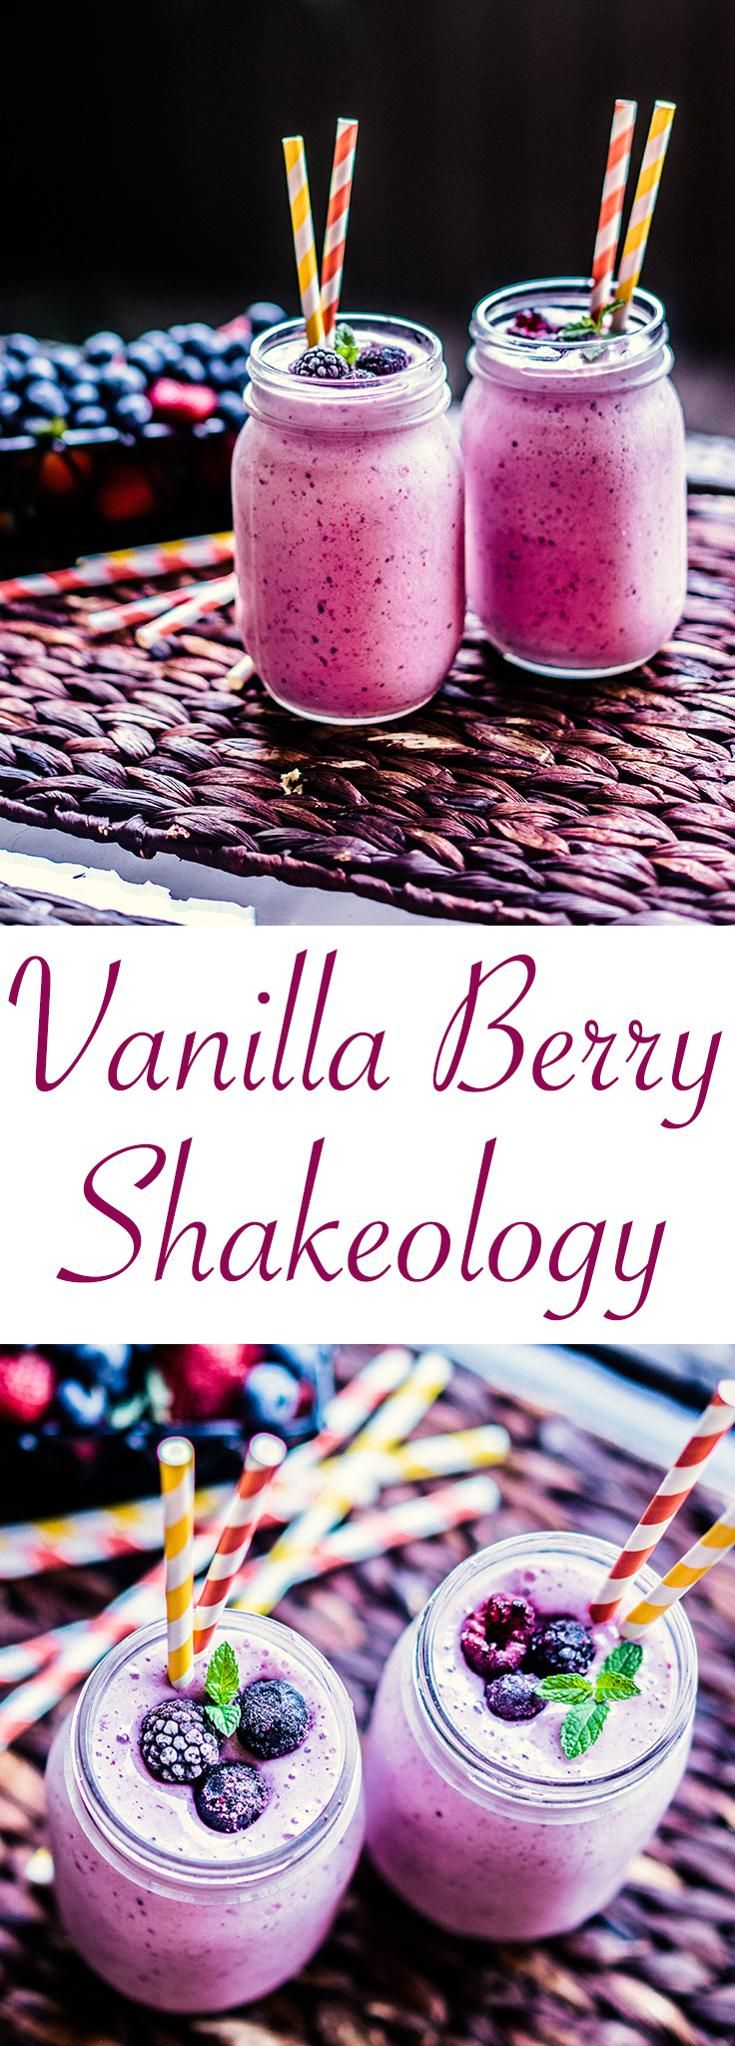 Vanilla Berry Delight Shakeology -- Here's an easy variation on Vanilla Shakeology that only requires some mixed berries and a little something special to make it extra smooth and creamy. Get the recipe here! // shakes // smoothies // recipes // breakfasts // snacks // beachbody // beachbody blog